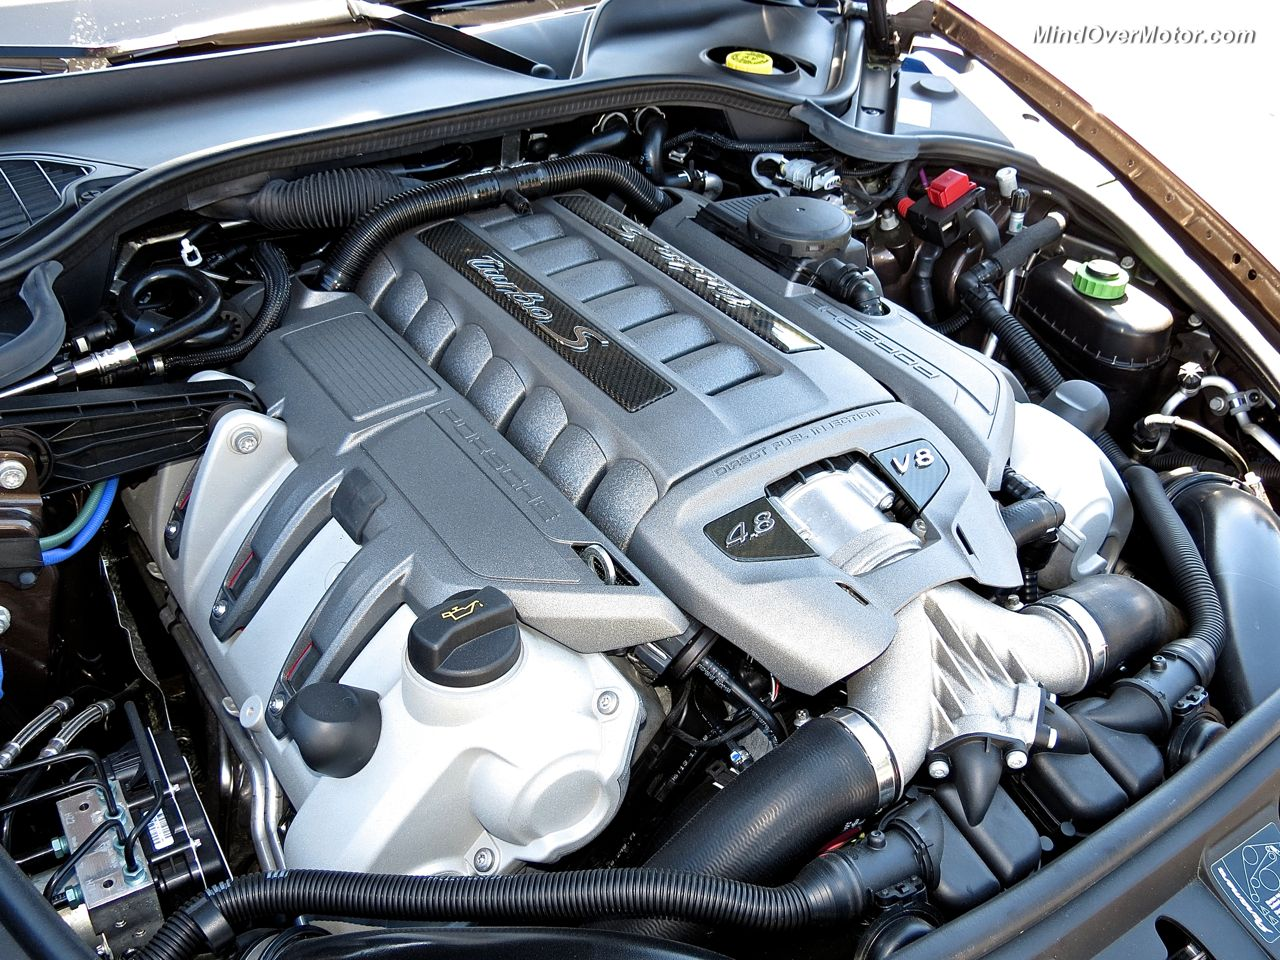 2015 porsche panamera turbo s executive reviewed 8 10 mind over motor